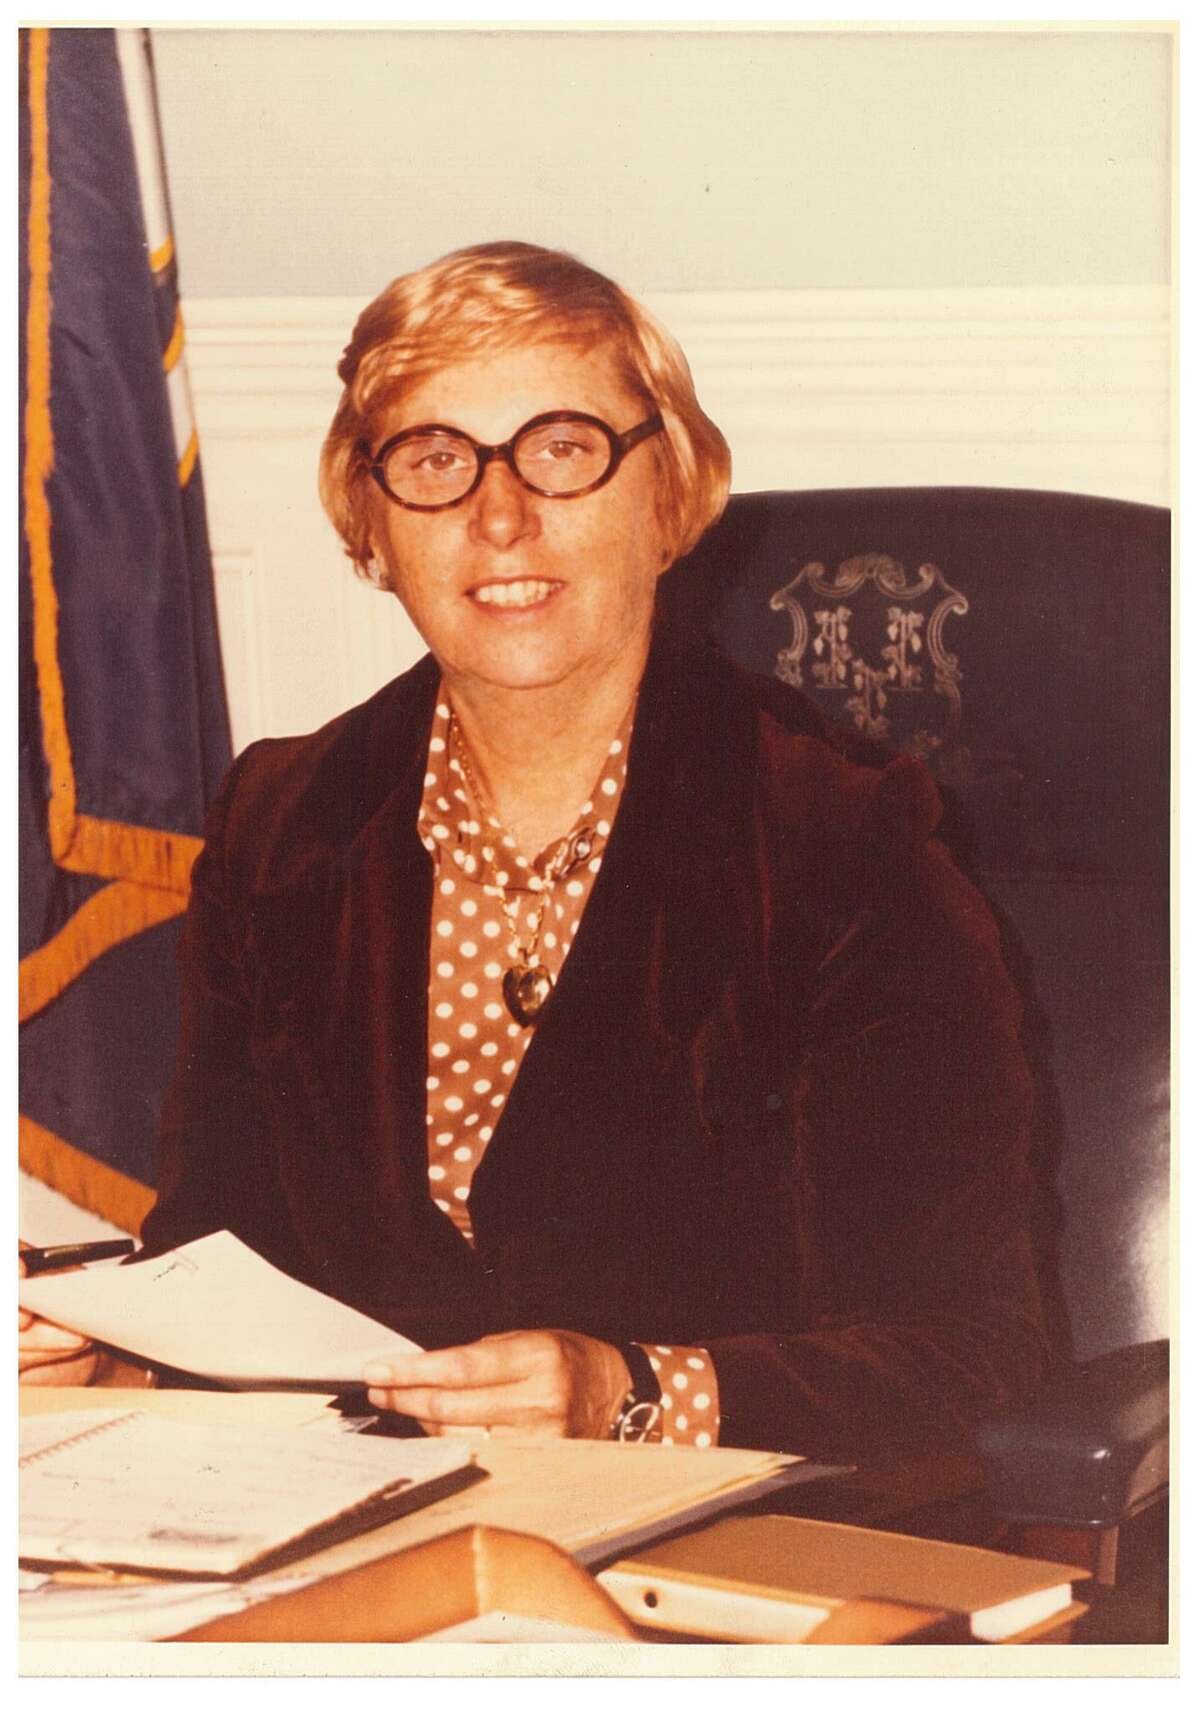 Connecticut Governor Ella Grasso served as Governor from 1975 to 1980.